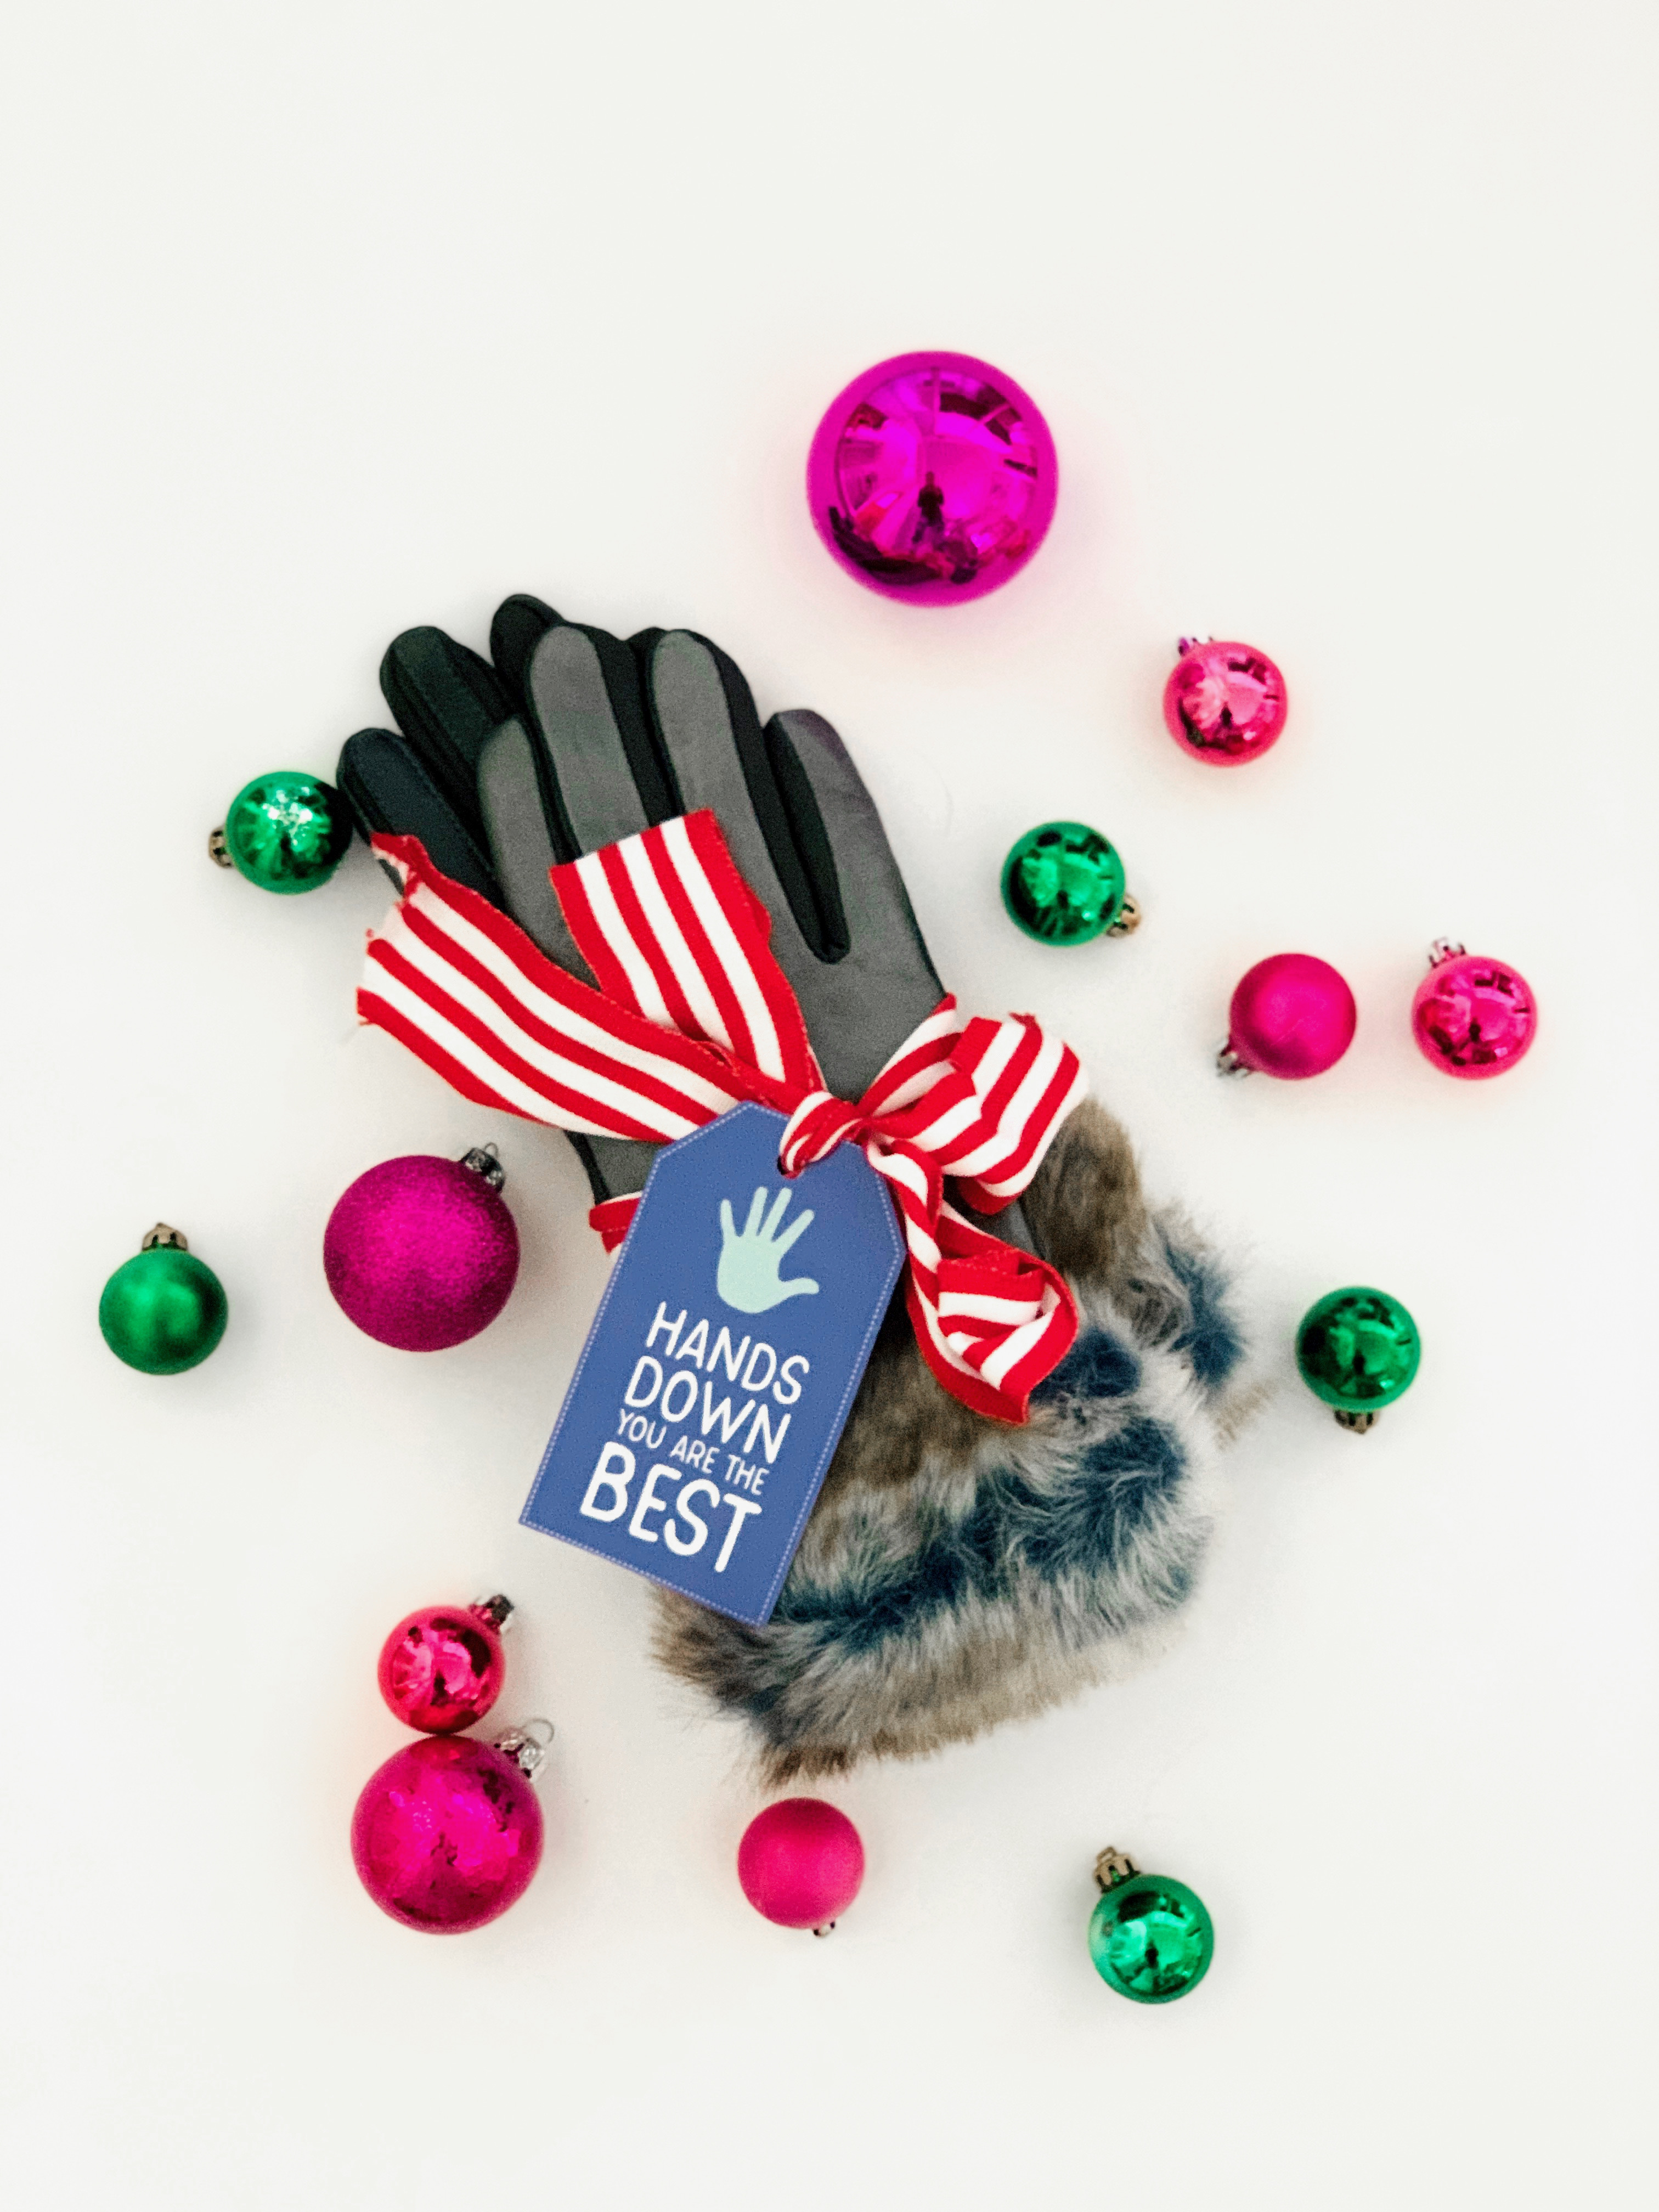 Free Printable For Glove Tag Just Posted